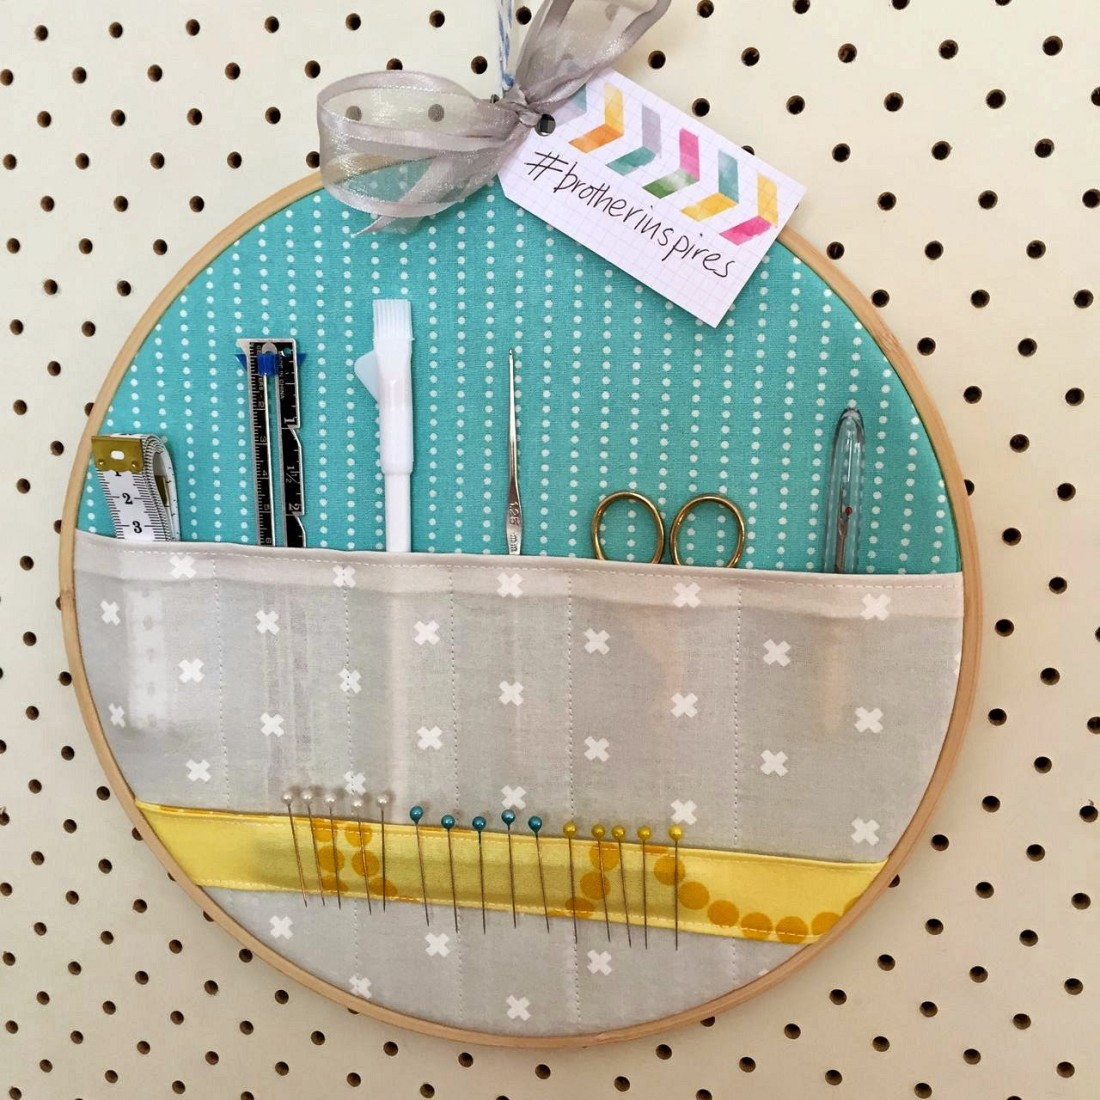 Embroidery hoop tool caddy